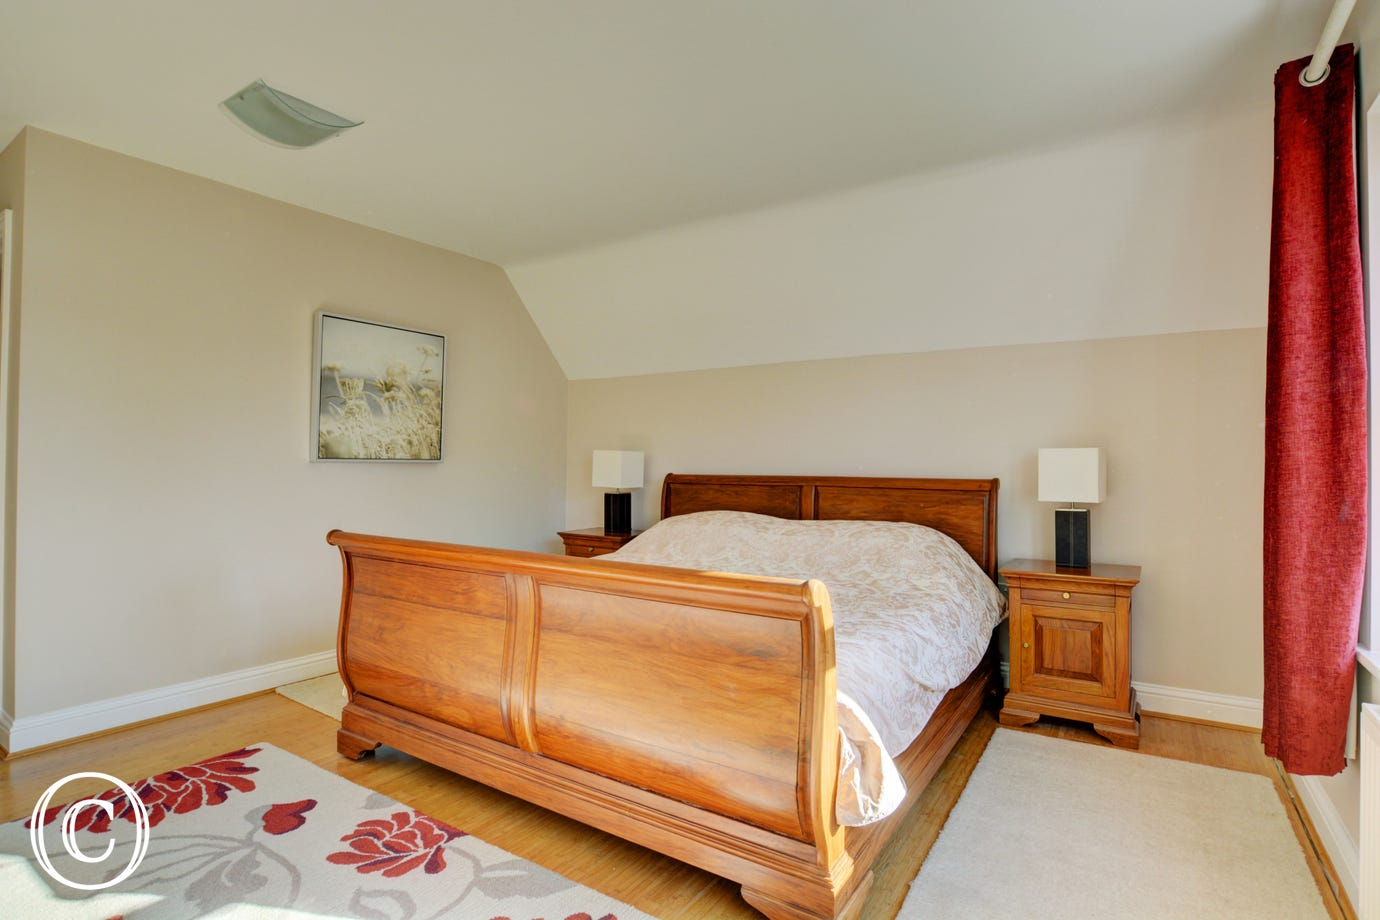 Charming first floor Master Bedroom with a 6ft sleigh bed and en-suite shower room with shower cubicle